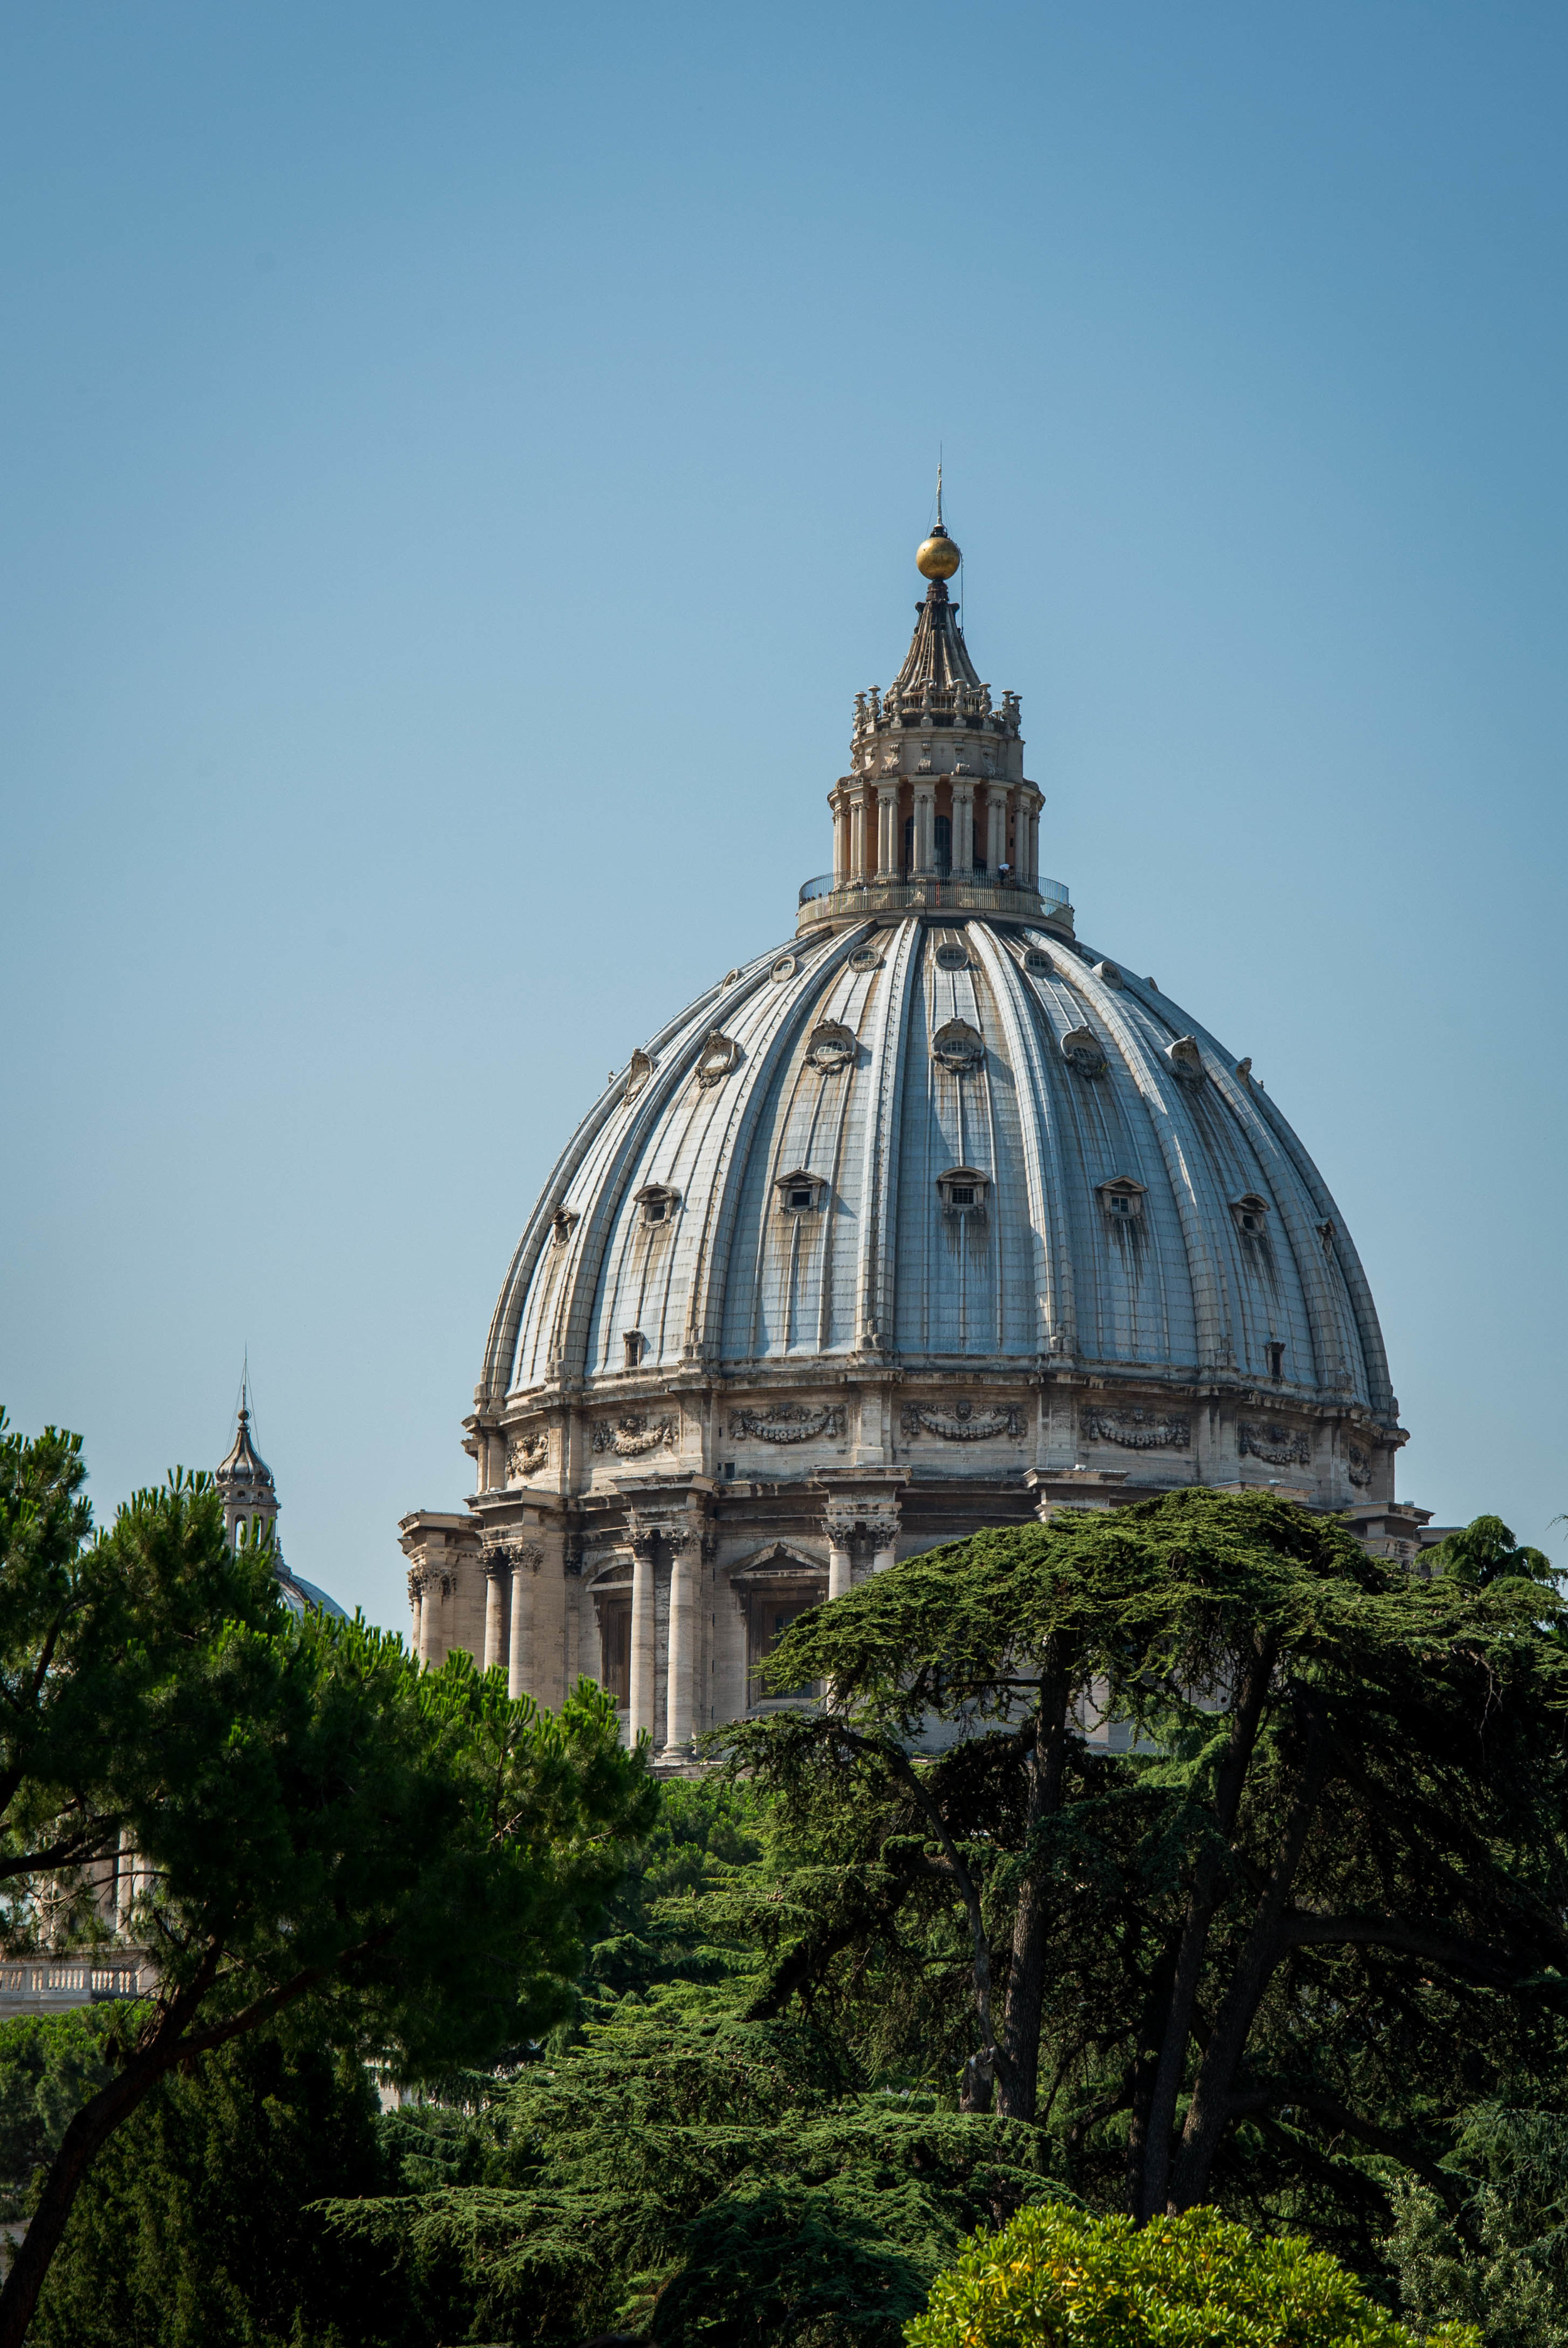 The Dome of St. Peters